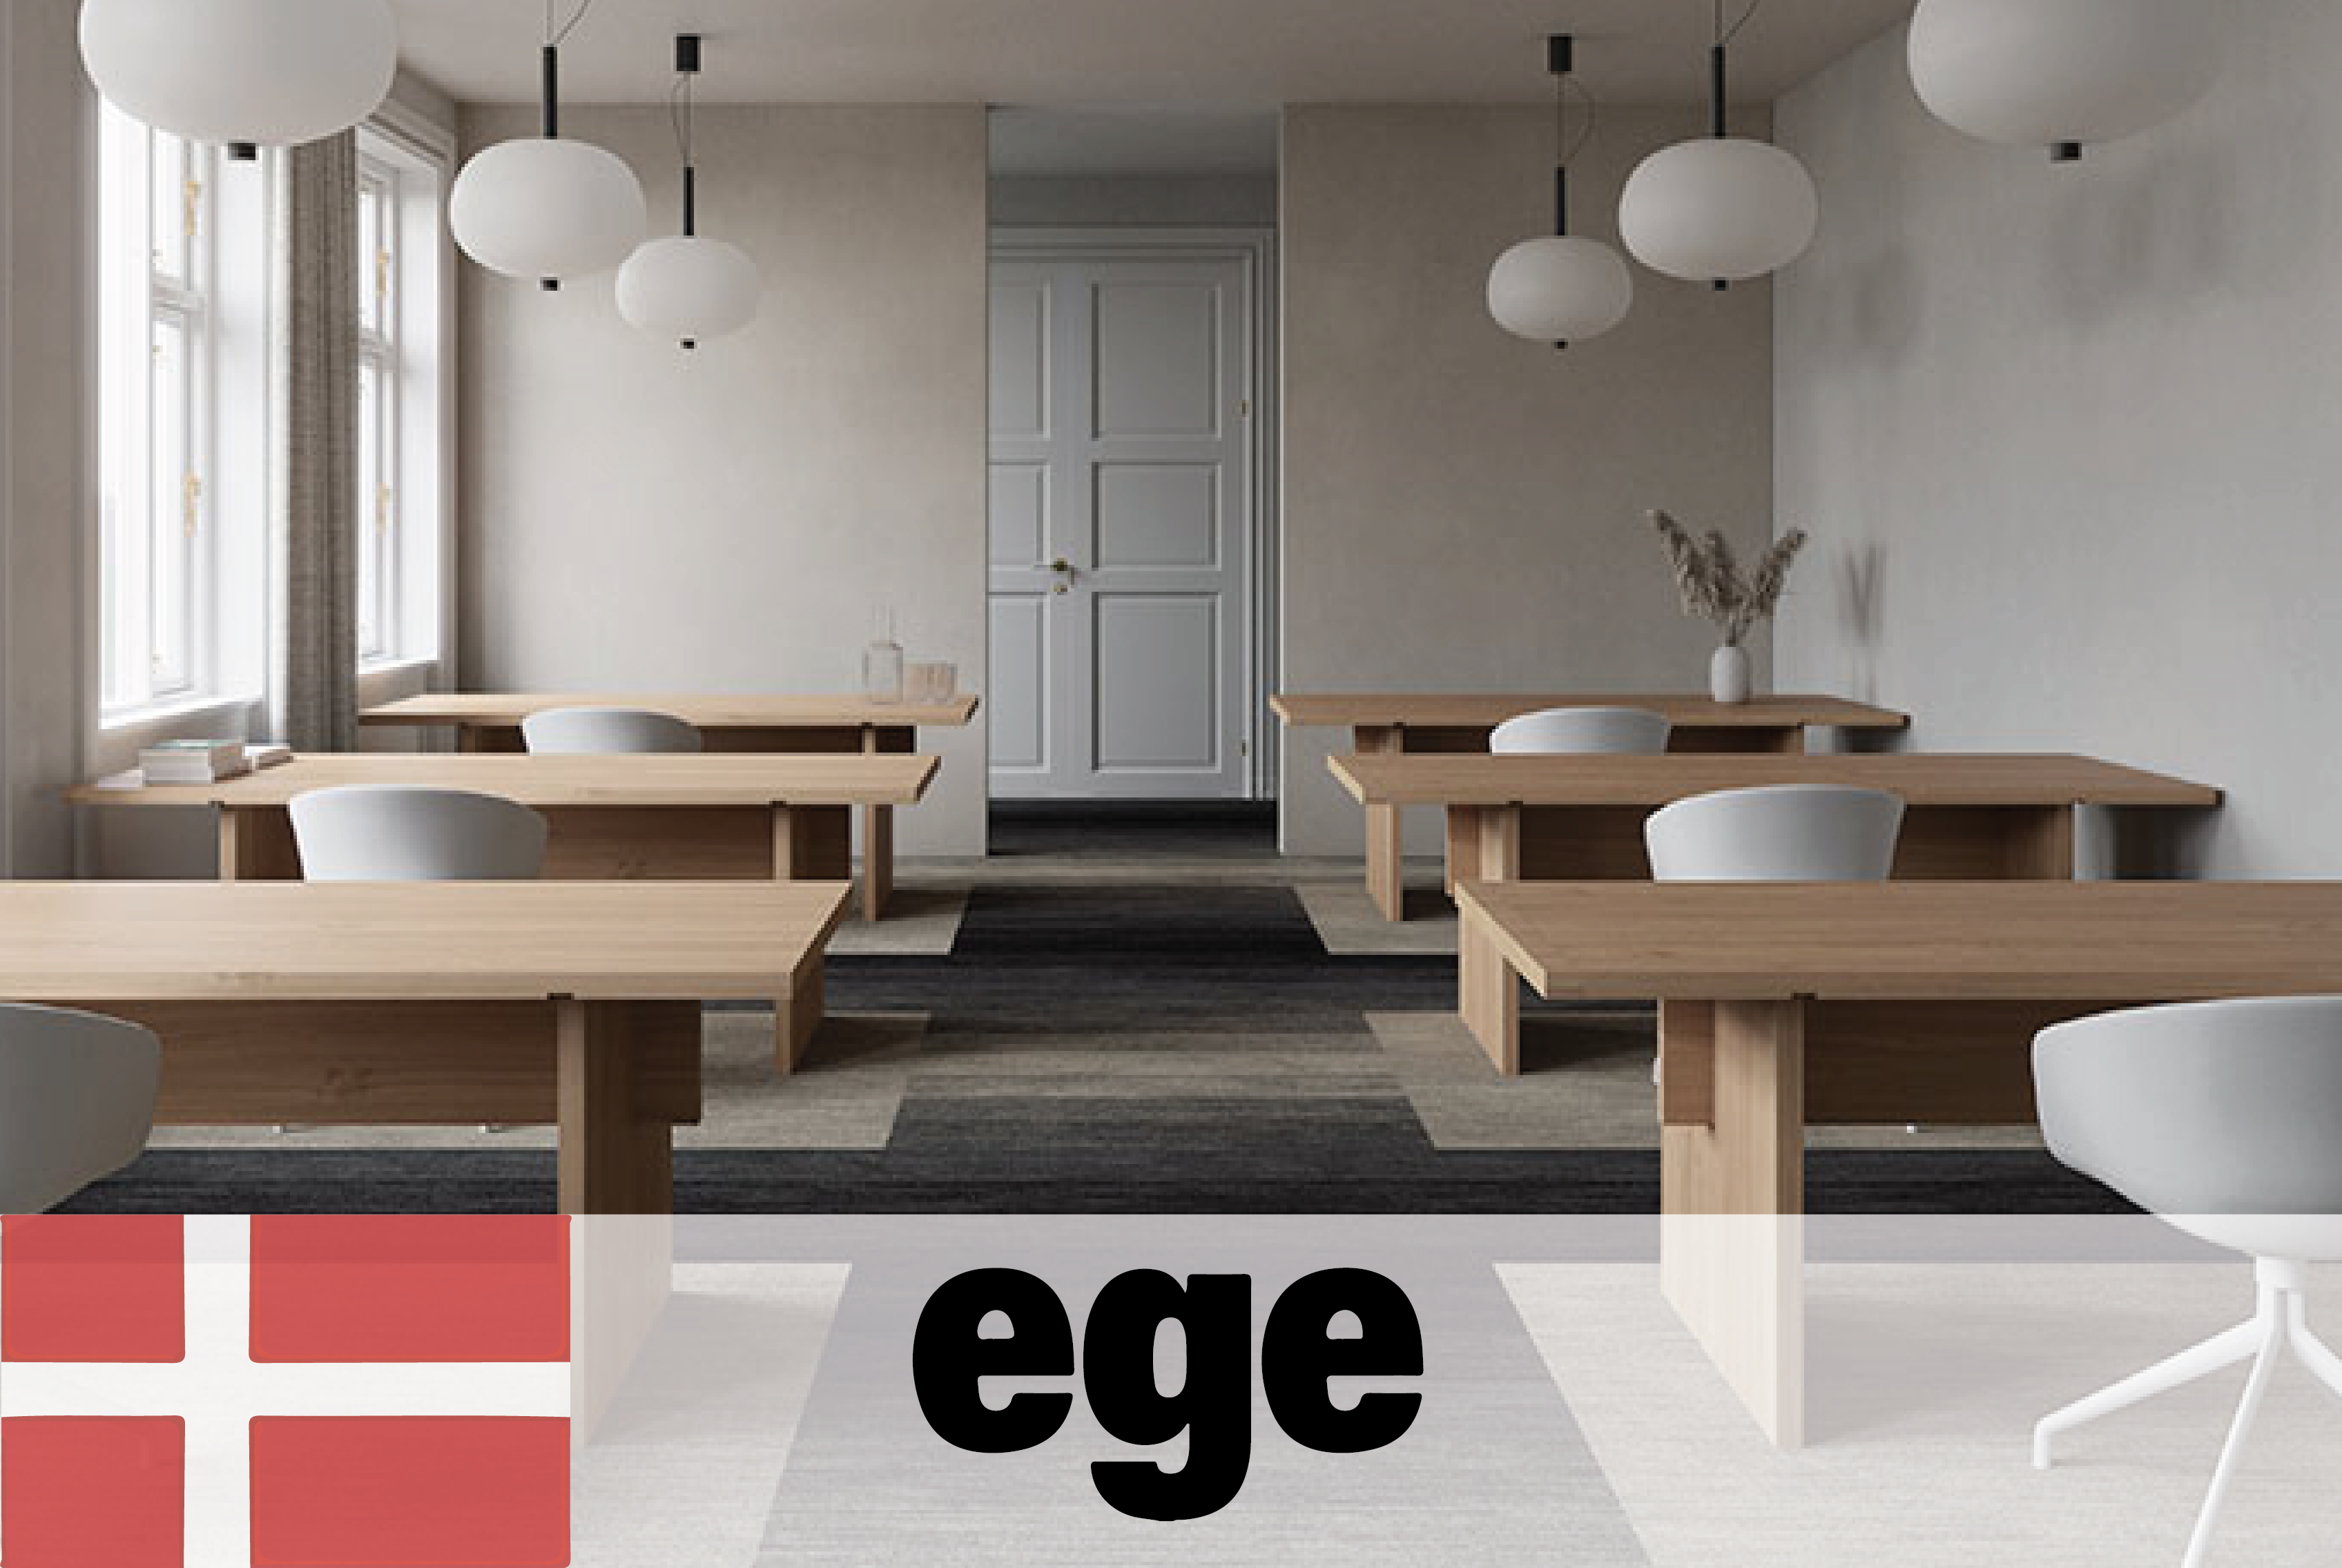 #60 Ege Carpets – Carpets from recycled materials - CIRCit Nord